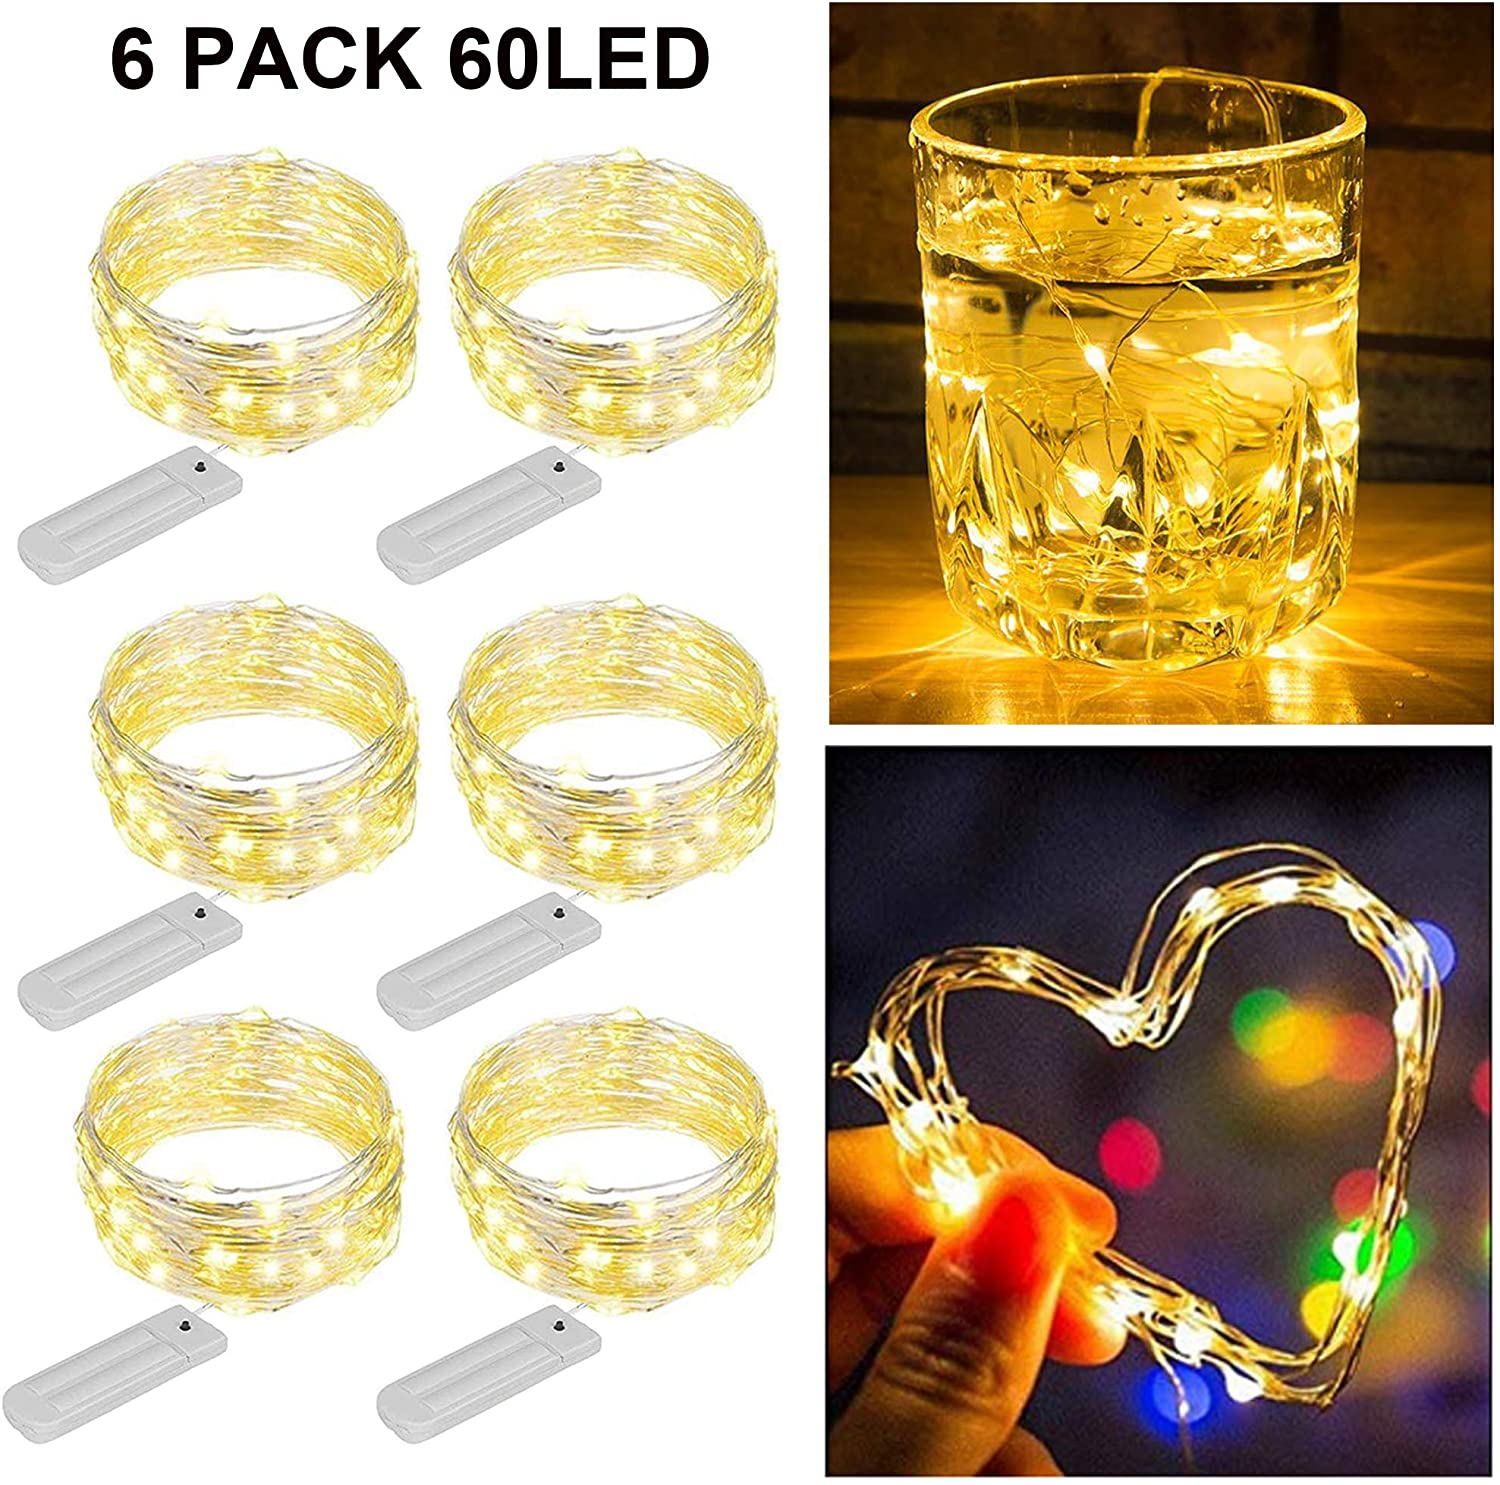 ZNYCYE 6 Pack 10 Feet 60 Led Fairy Lights Battery Operated String Lights with 8 Modes (No Timer) Waterproof Copper Wire Mini Lights for DIY, Wedding, Bedroom, Craft Decoration (Warm White)